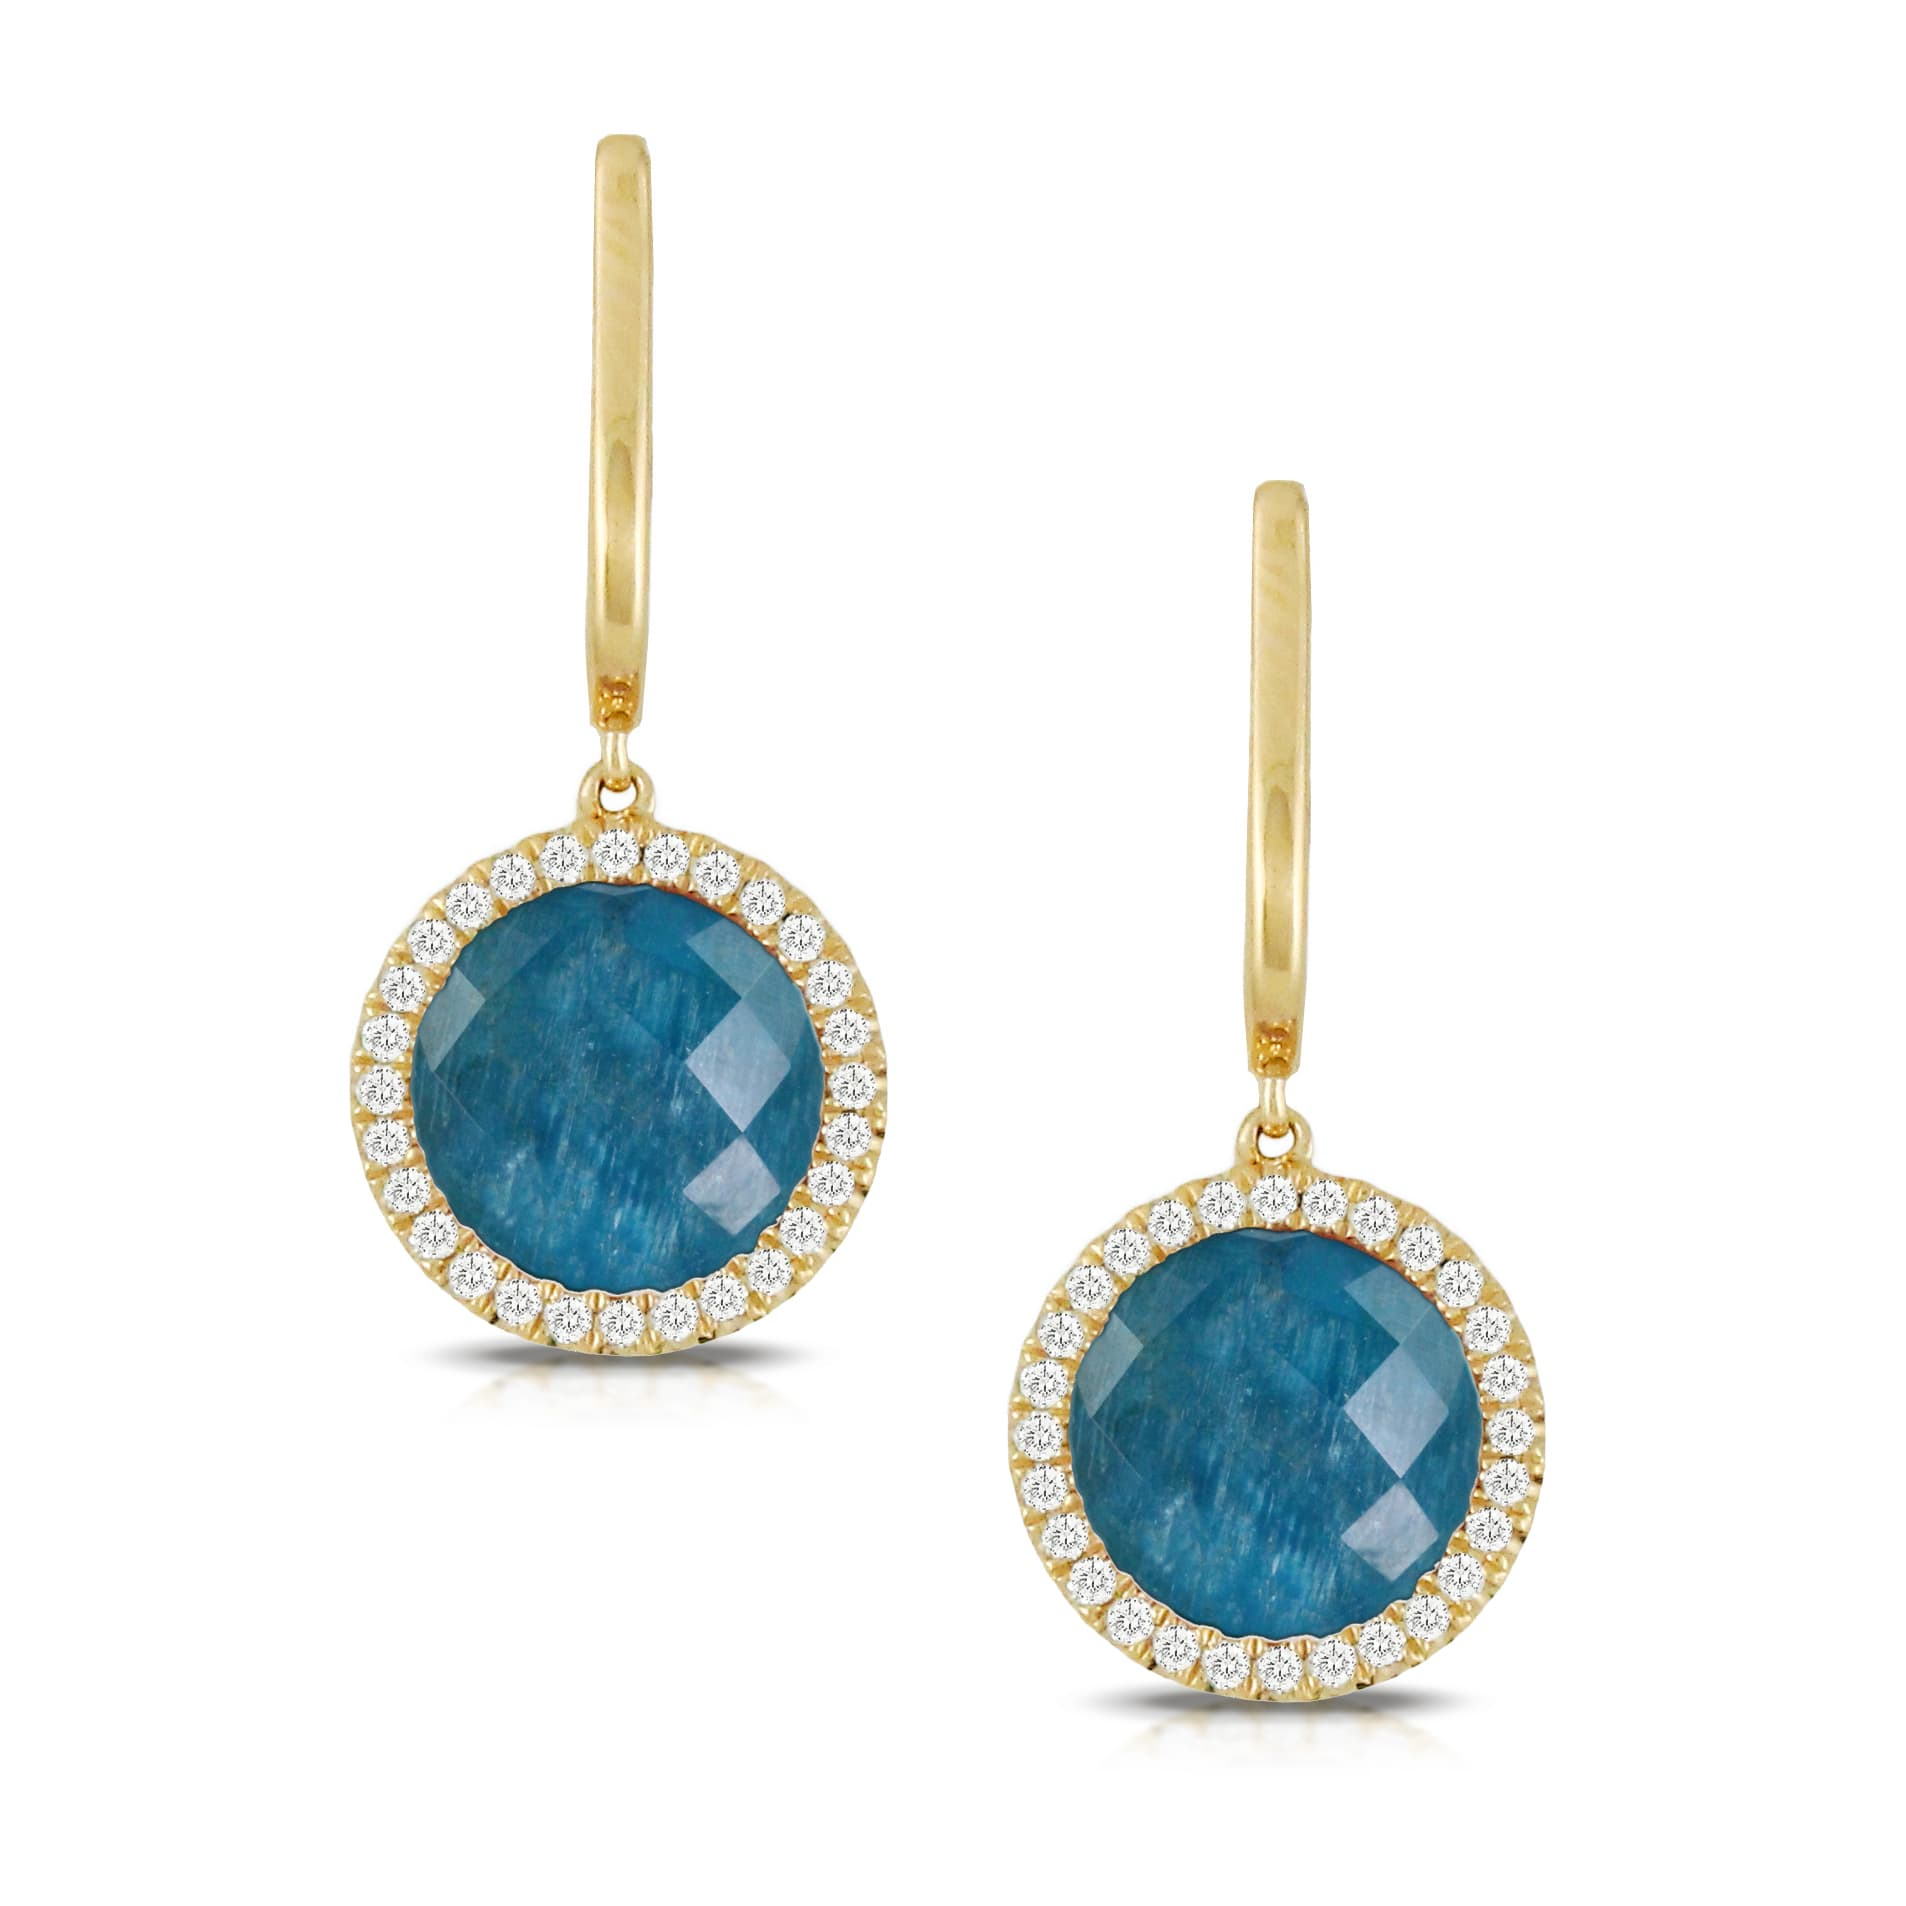 18K YELLOW GOLD DIAMOND EARRING WITH CLEAR QUARTZ OVER APATITE